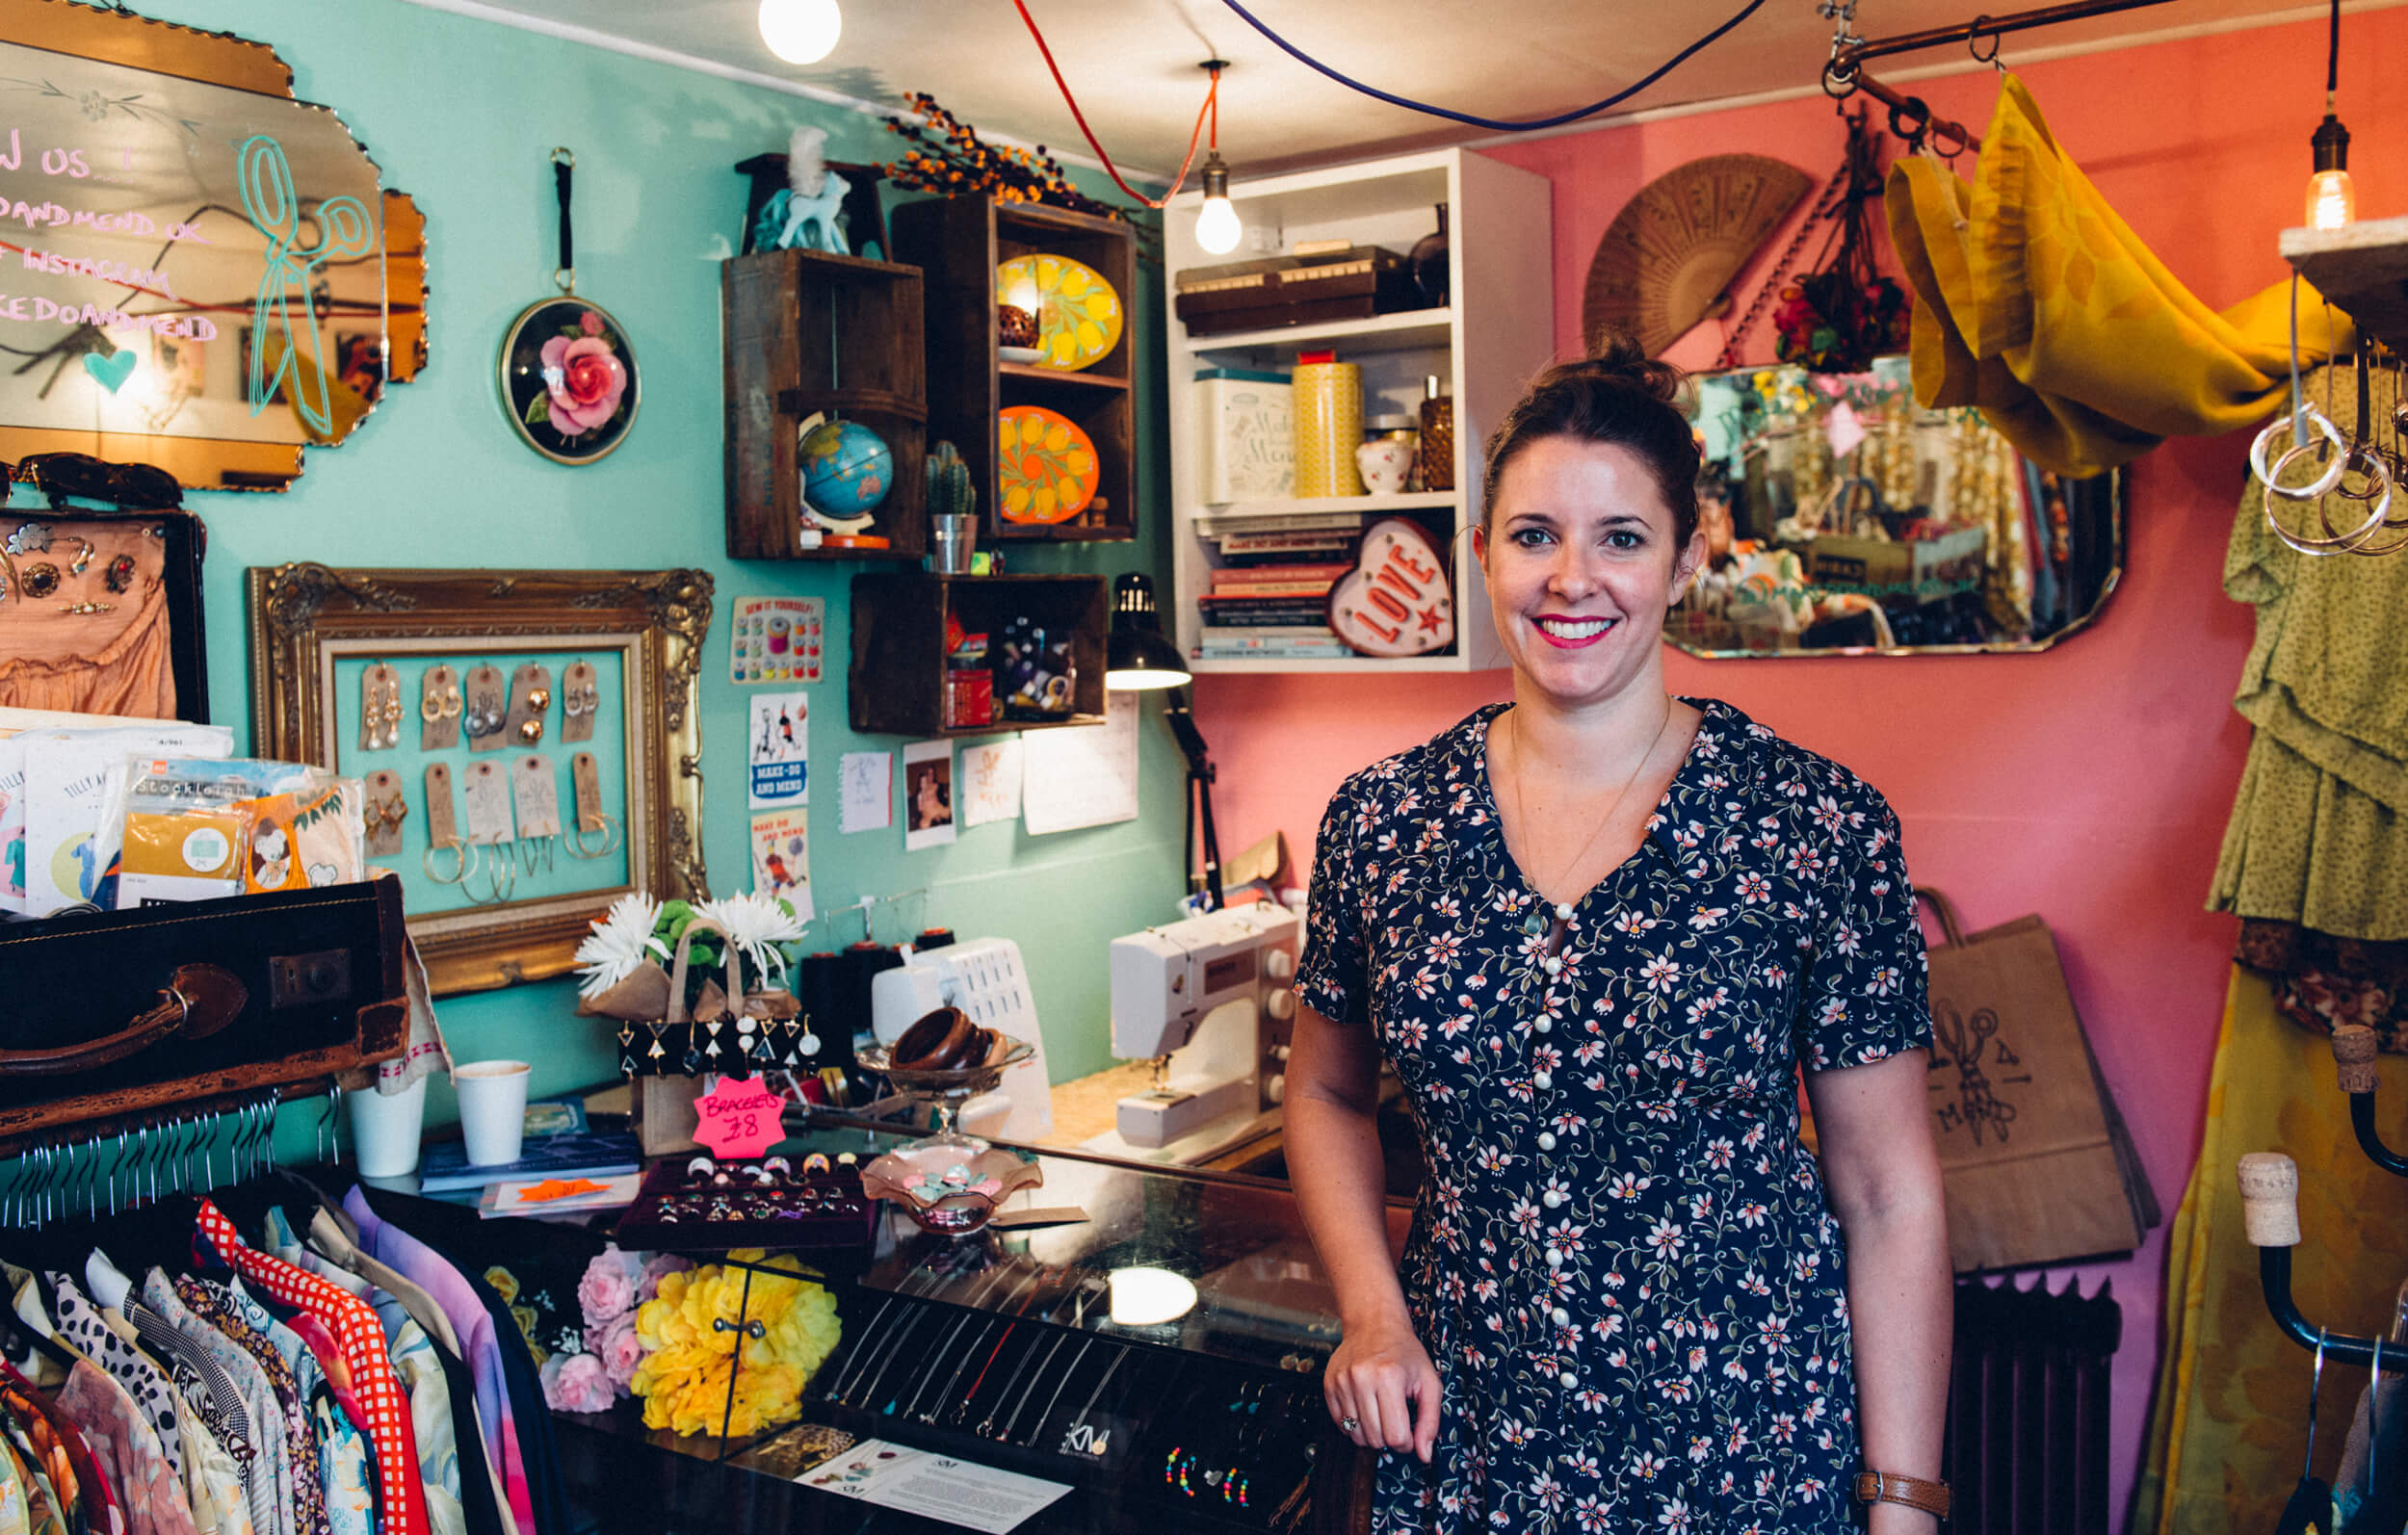 Sarah Robins, the owner of Make Do and Mend in Brixton